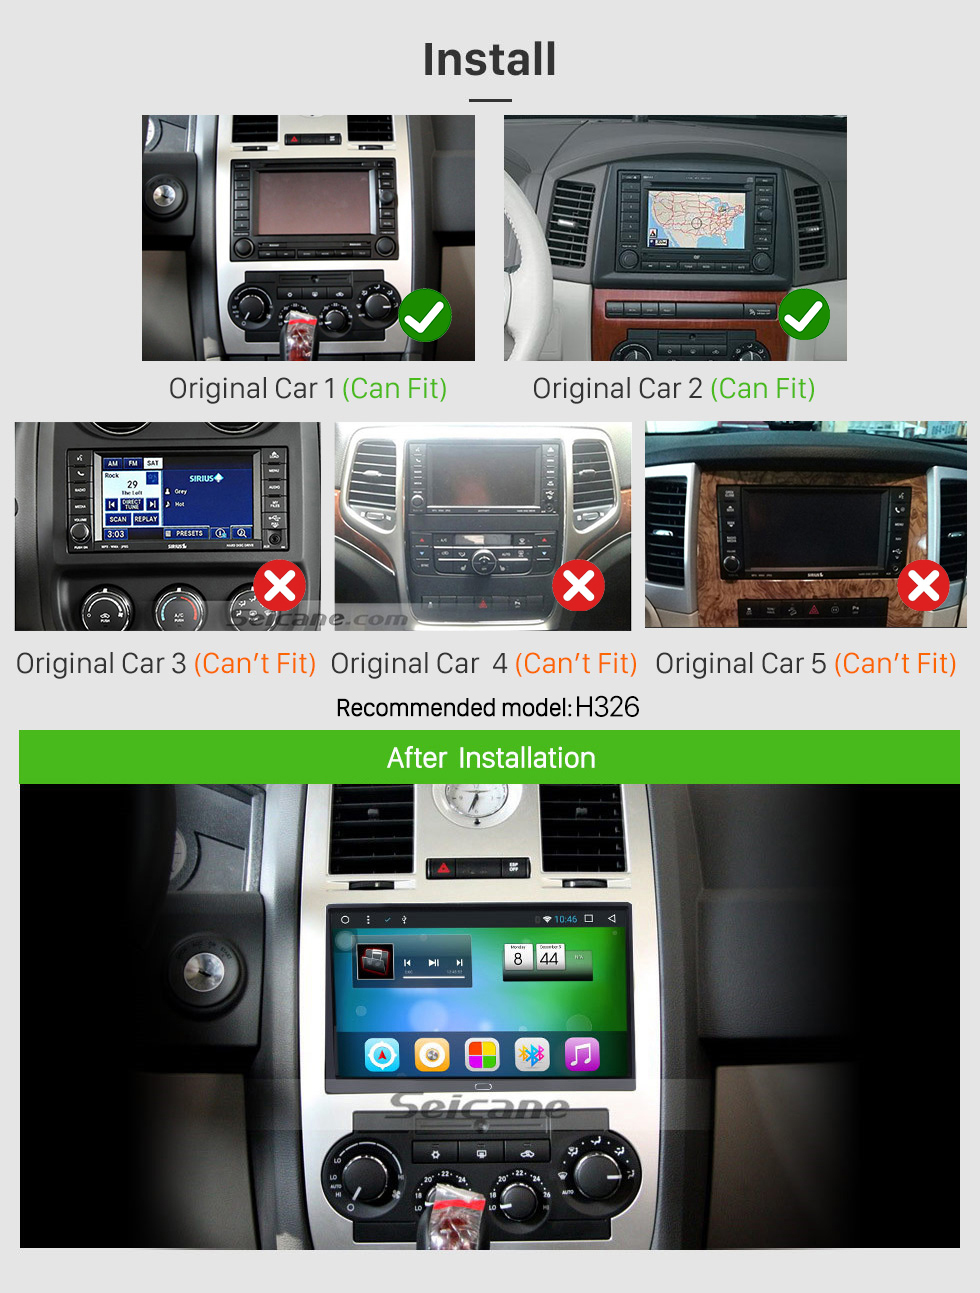 Seicane 9 inch 2004 2005 2006 DODGE Avenger Caliber Challenger Dakota Durango Journey Magnum Android 8.1 Bluetooth  GPS Navigation System  with TV Tuner USB AUX Steering Wheel Control